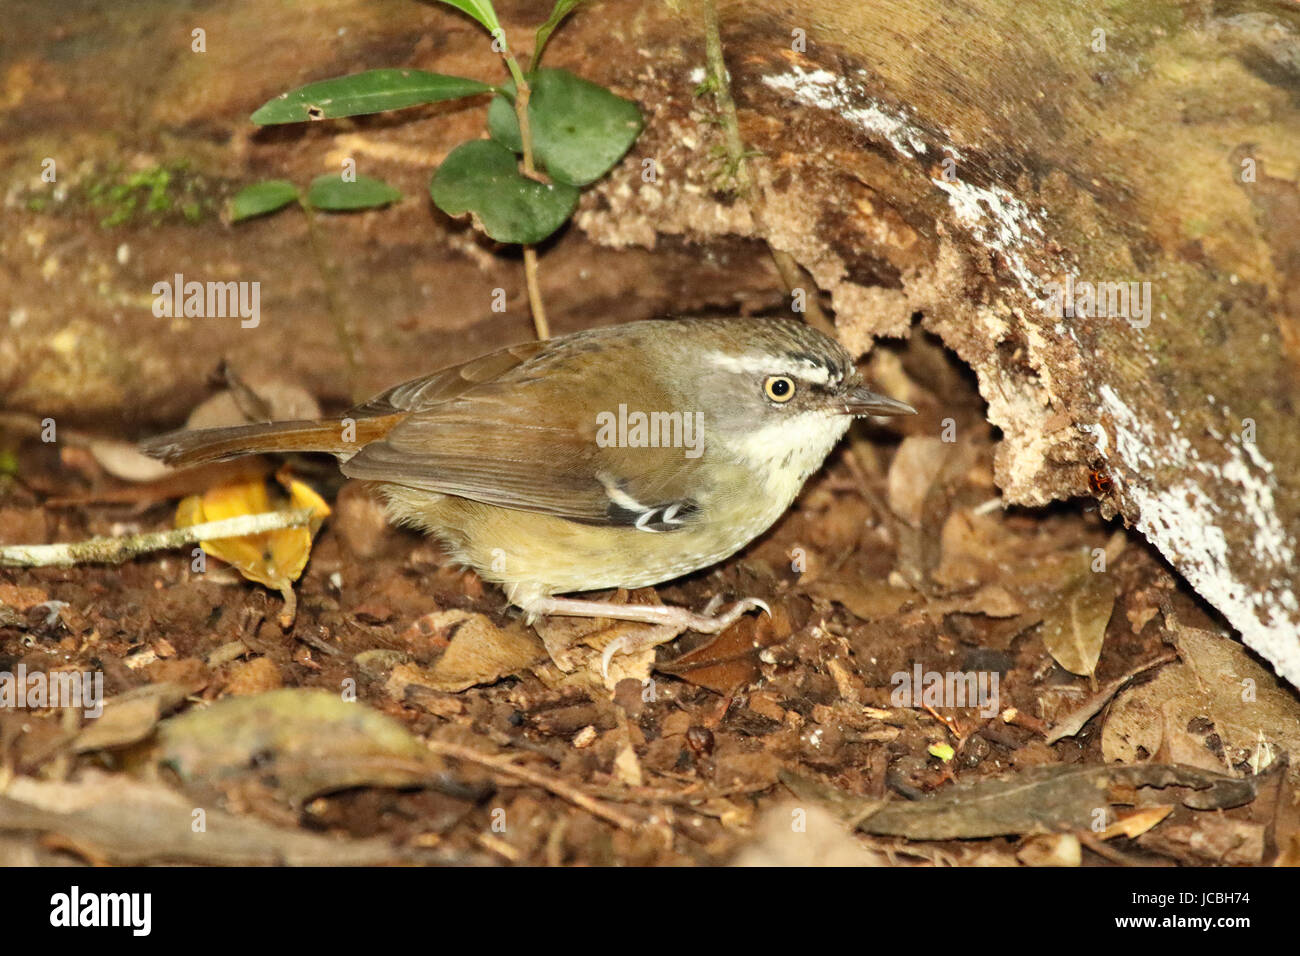 A White-browed Scrub Wren searching for food in an Australian forest. - Stock Image